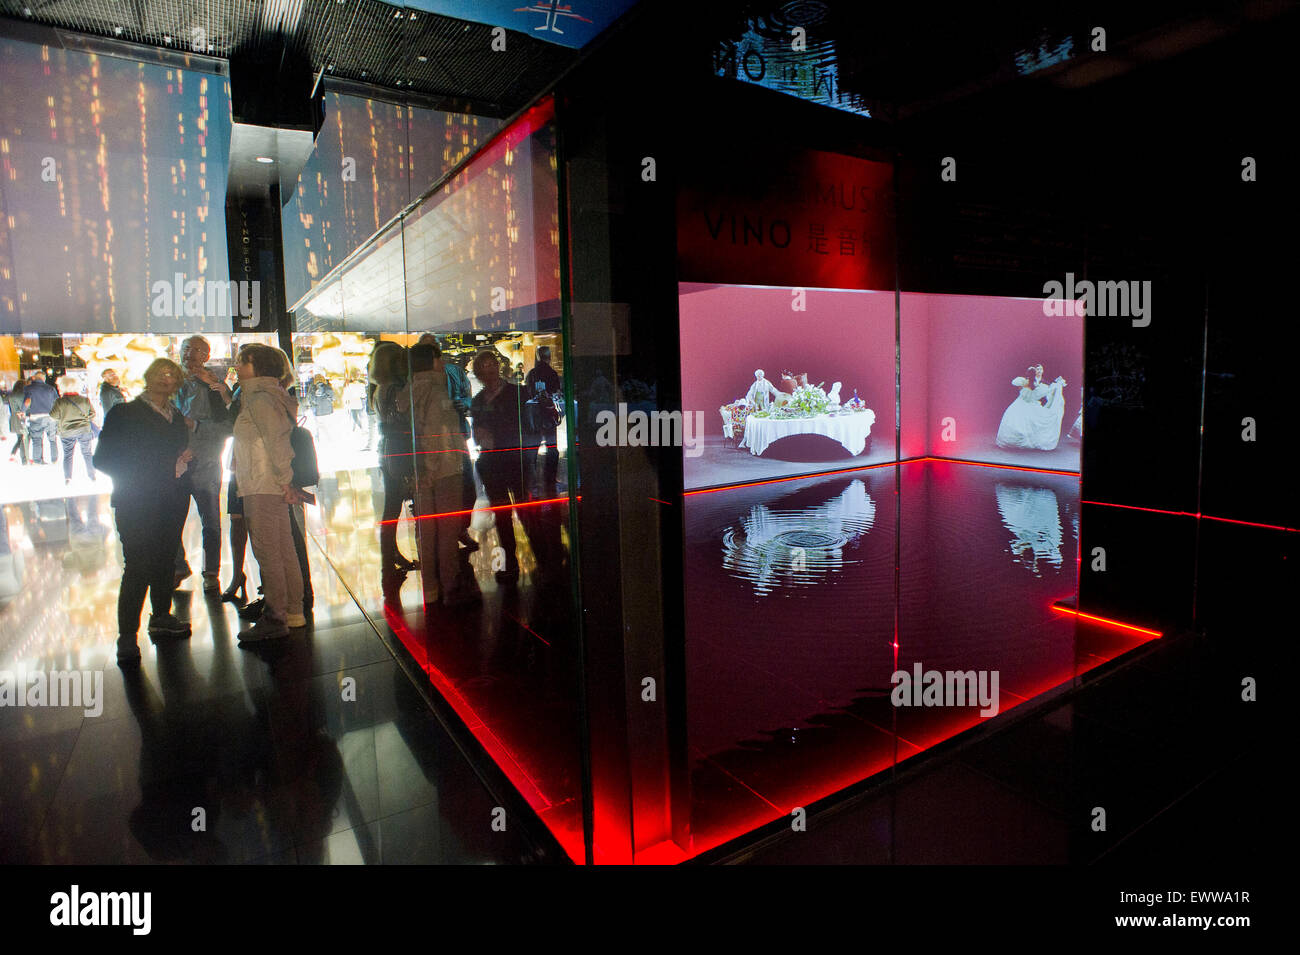 Italy, Milan, Expo 2015, Hall of Wine Italy, the presence of art in the pavilion's history, sociability, love. Stock Photo